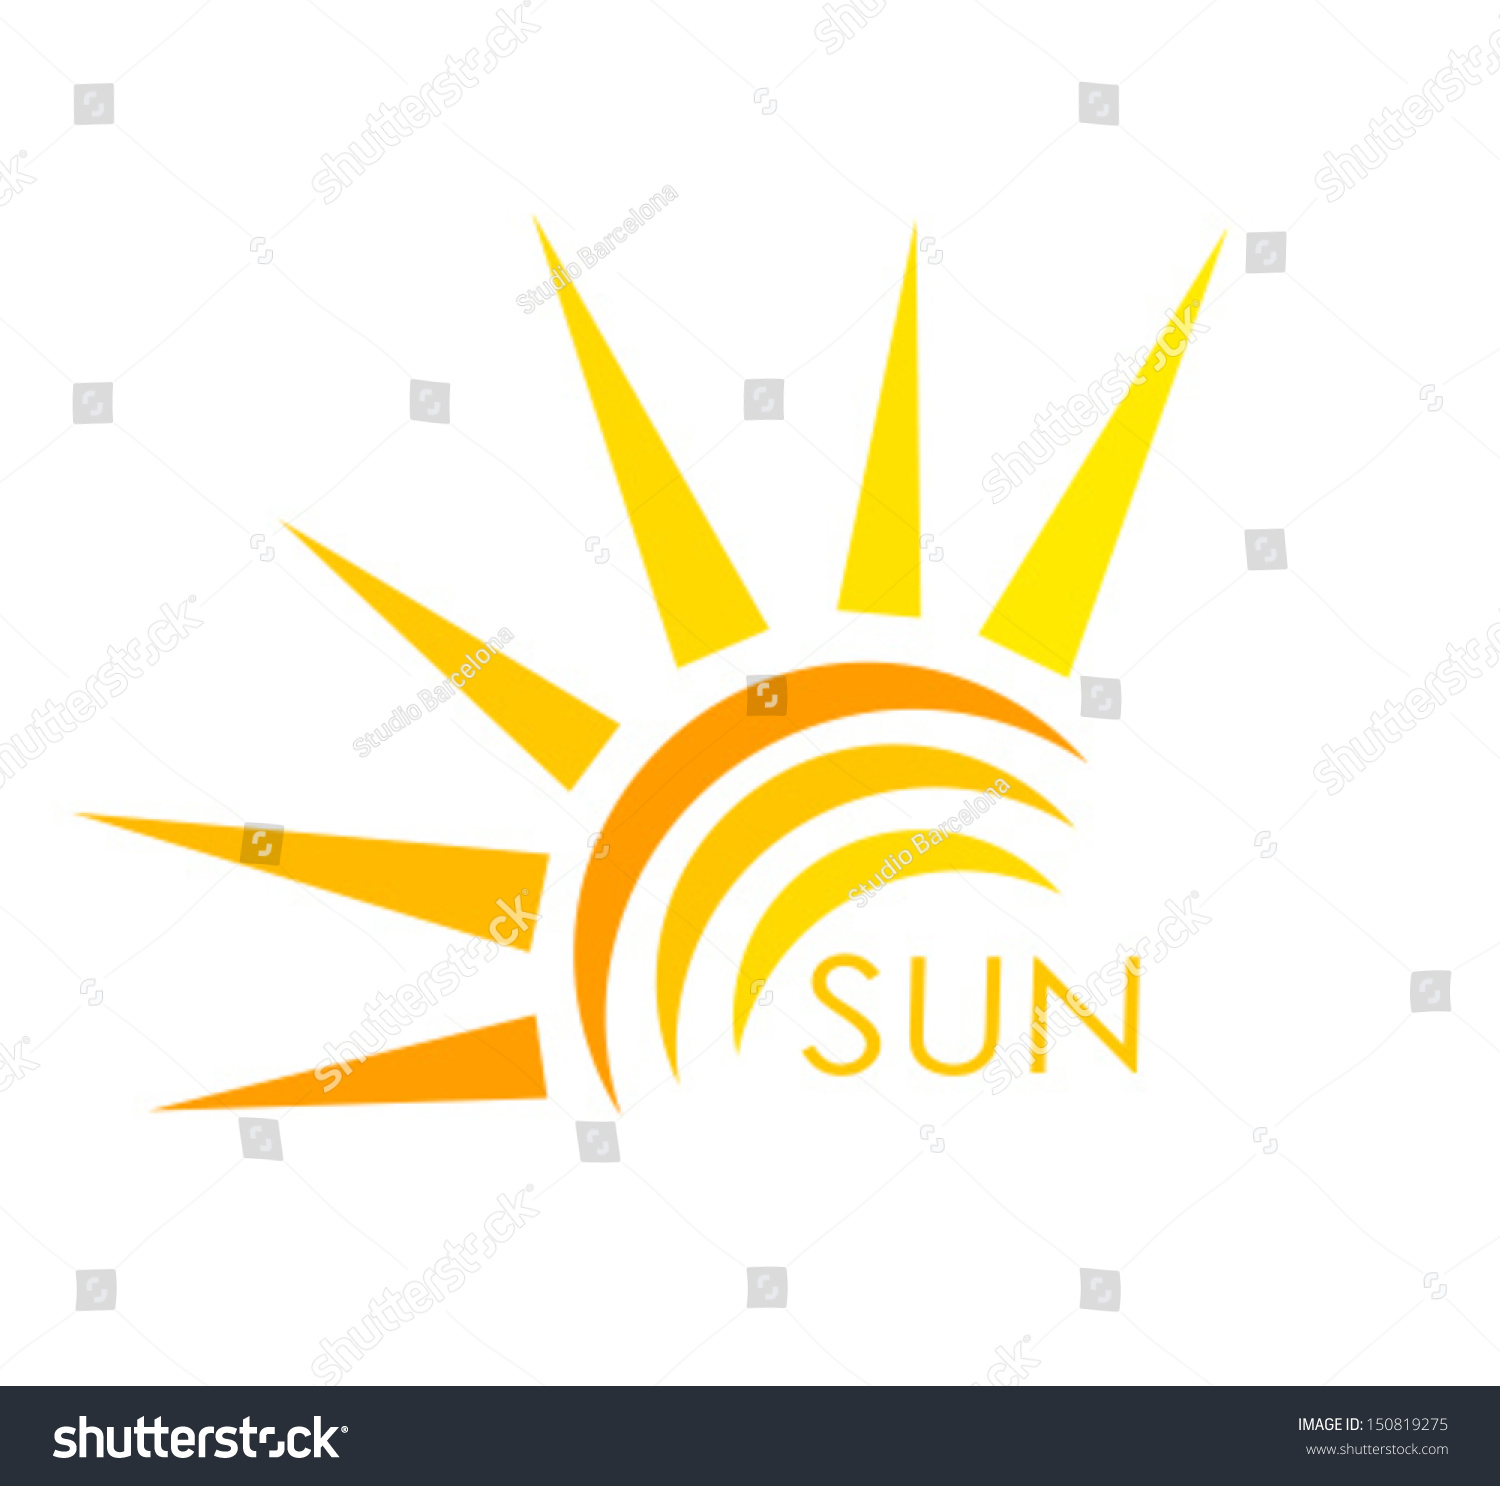 Sunedison stock symbol images symbols and meanings sun symbol abstract vector illustration stock vector 150819275 sun symbol abstract vector illustration biocorpaavc buycottarizona Choice Image